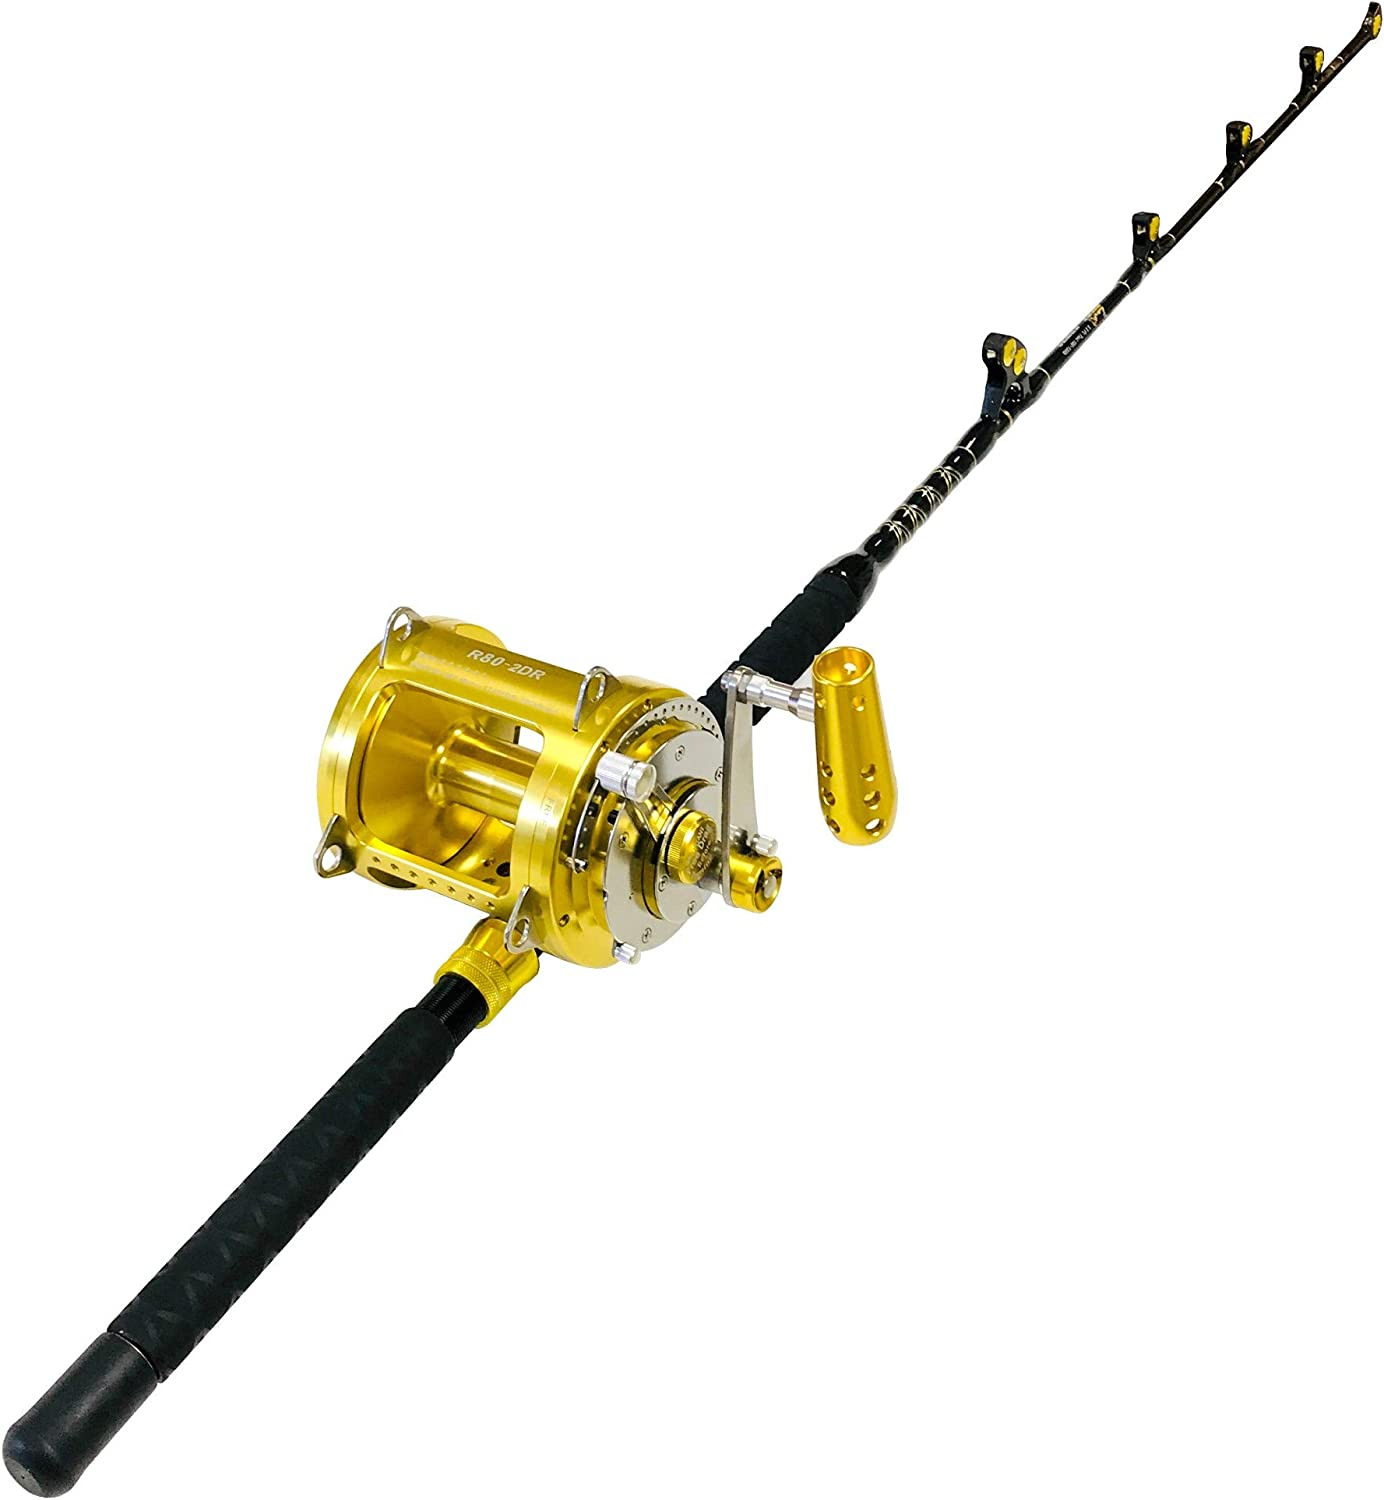 EatMyTackle 80 Wide 2 Speed Fishing Reel on a 100-120 lb. Blue Marlin Tournament Edition Rod